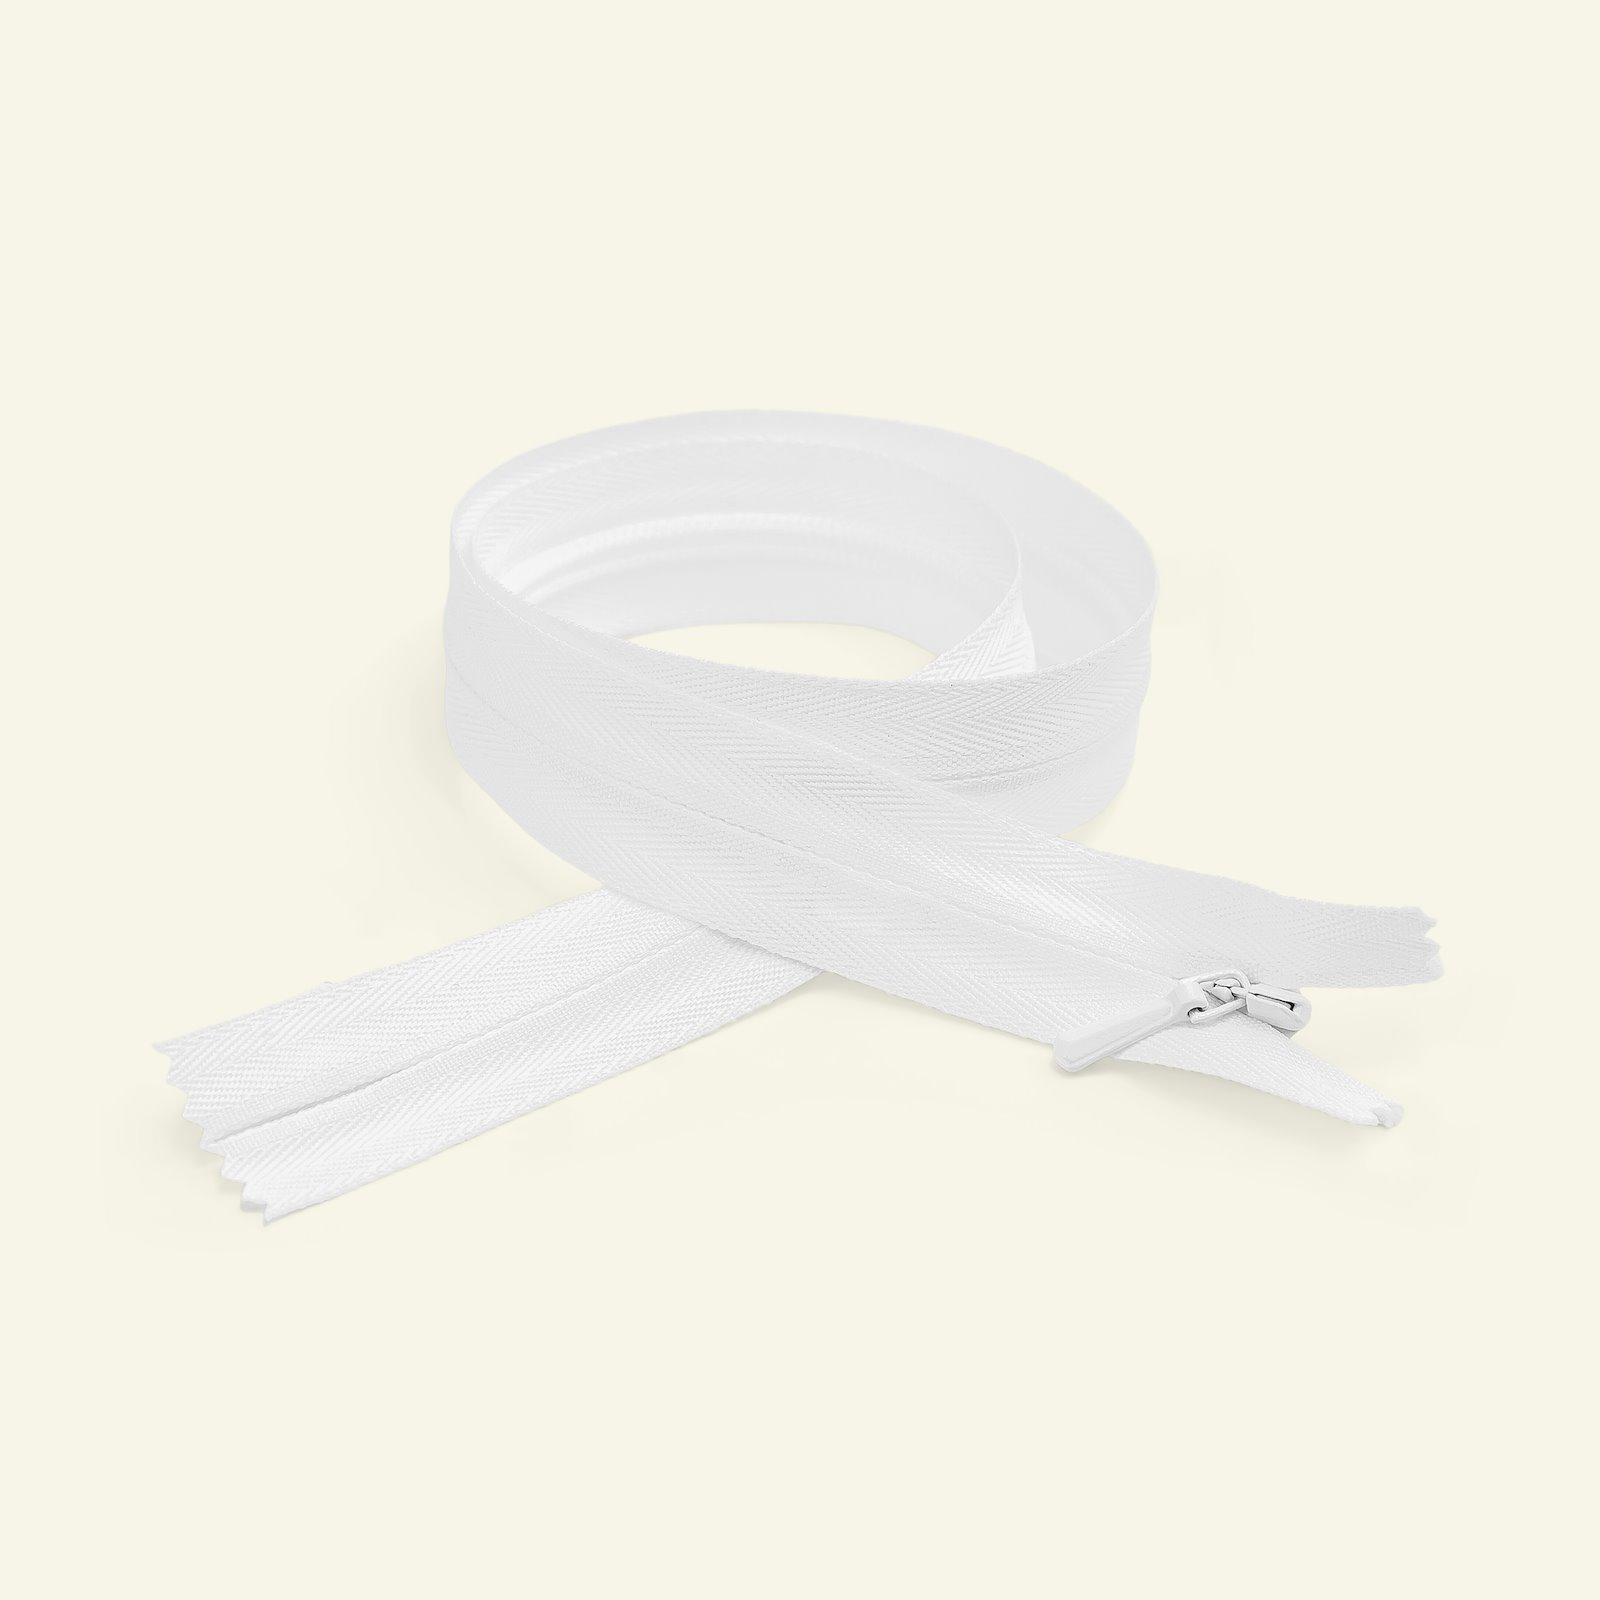 YKK zip 4mm invisible closed 25cm white x40701_pack